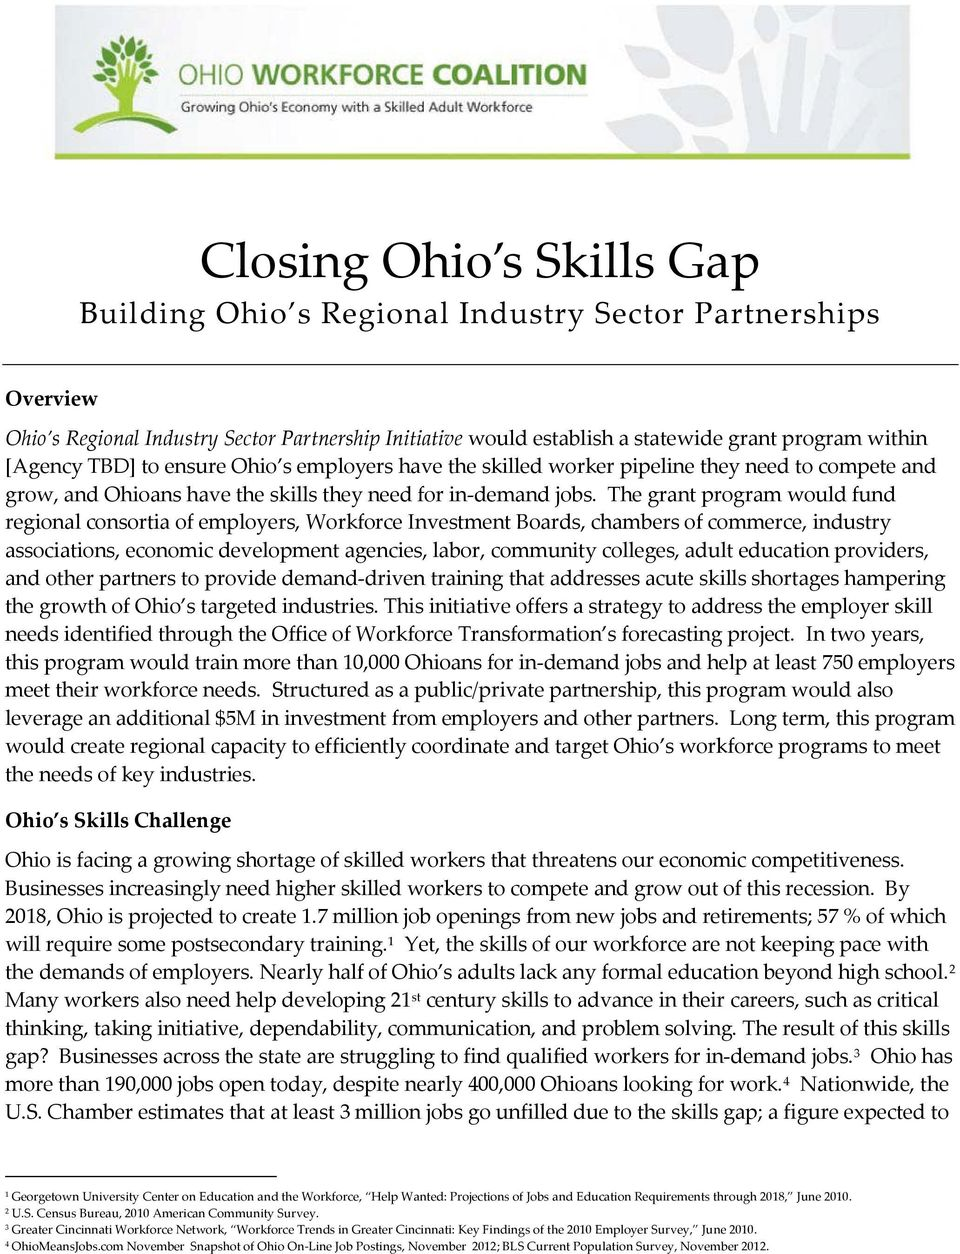 The grant program would fund regional consortia of employers, Workforce Investment Boards, chambers of commerce, industry associations, economic development agencies, labor, community colleges, adult